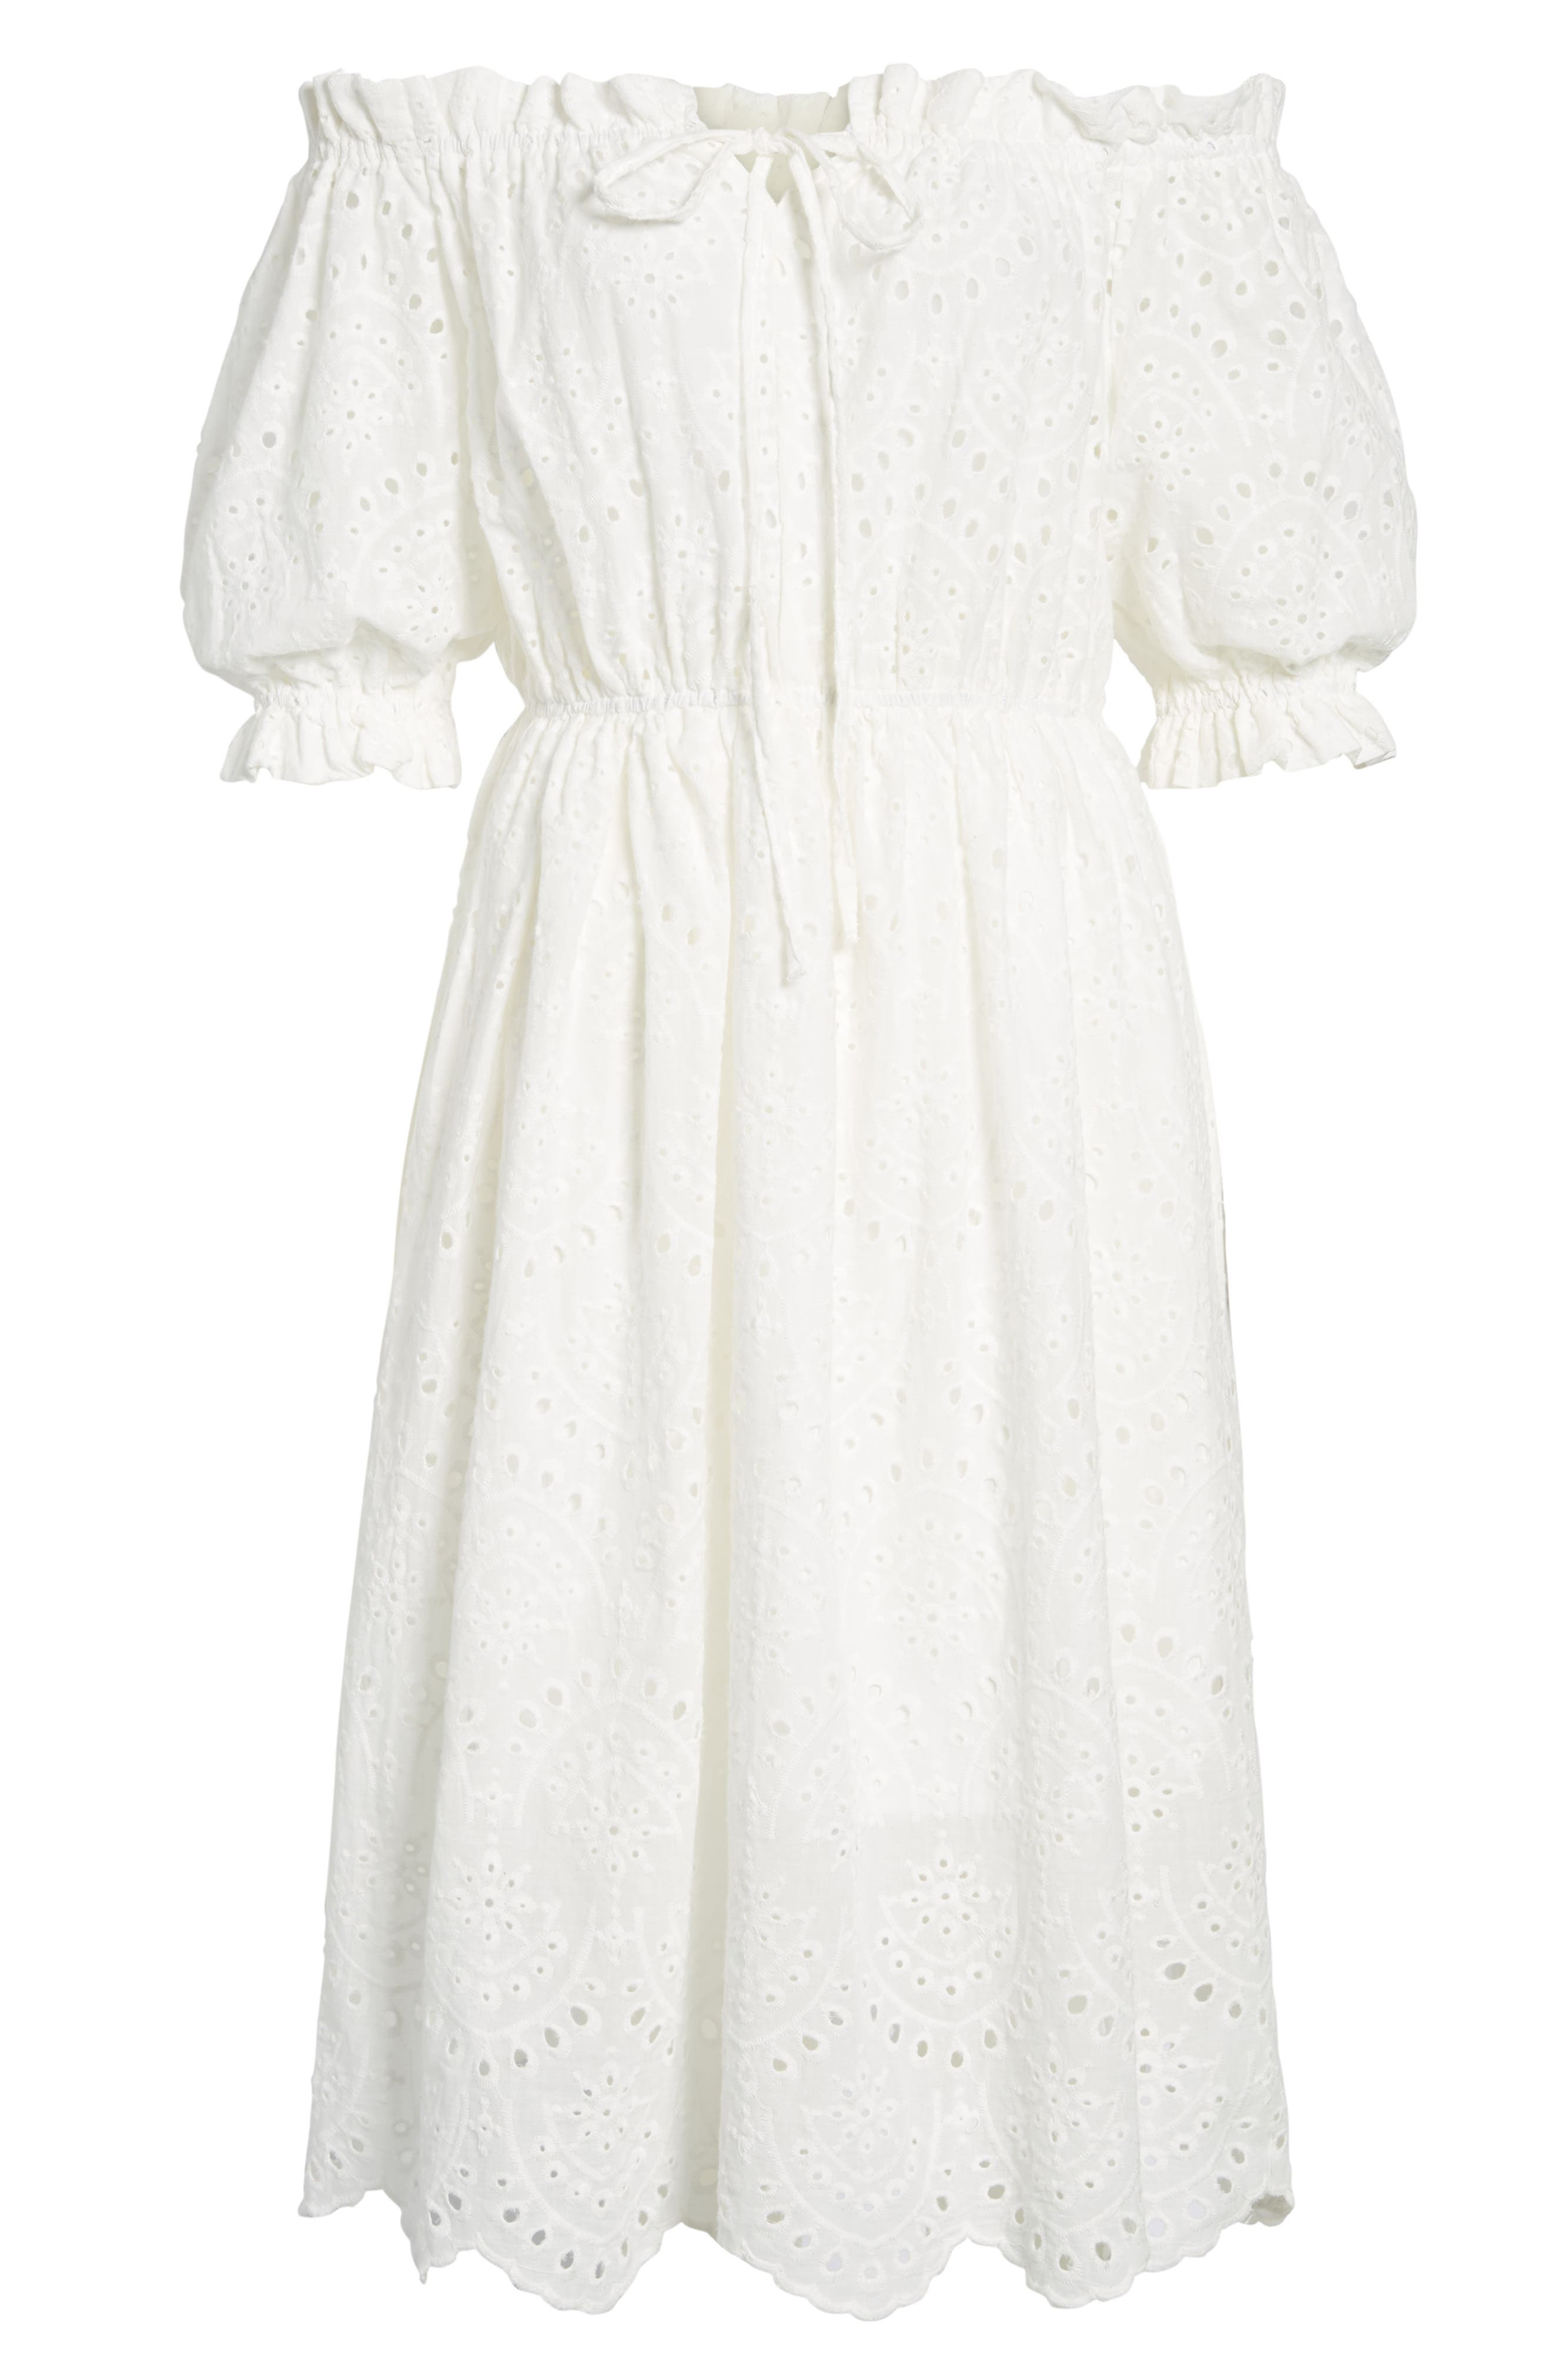 The White Party Off the Shoulder Dress,                             Alternate thumbnail 8, color,                             White